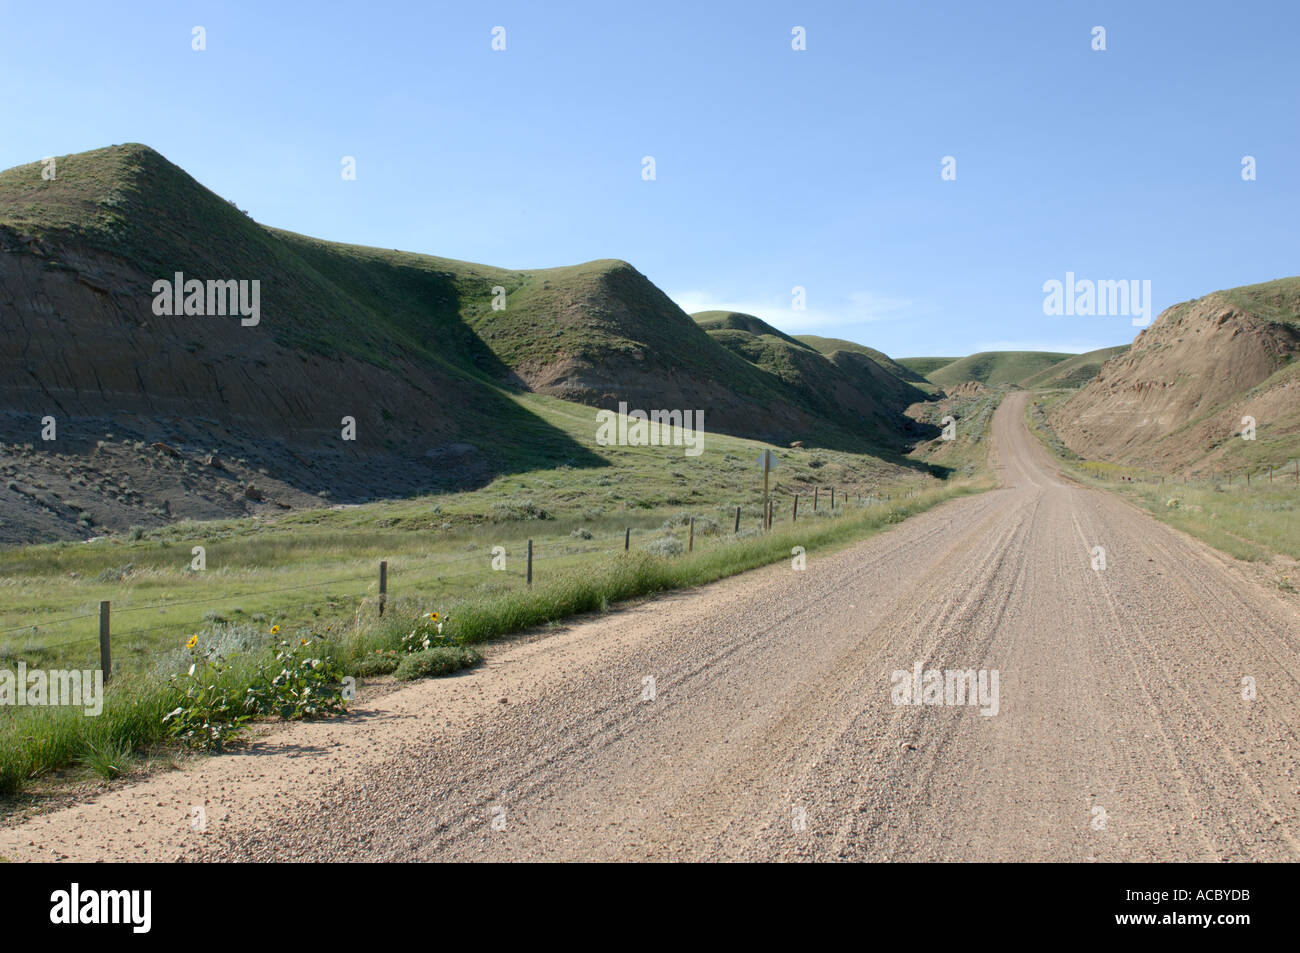 Highway 848 near ghost town of Dorothy Southern Alberta Canada - Stock Image